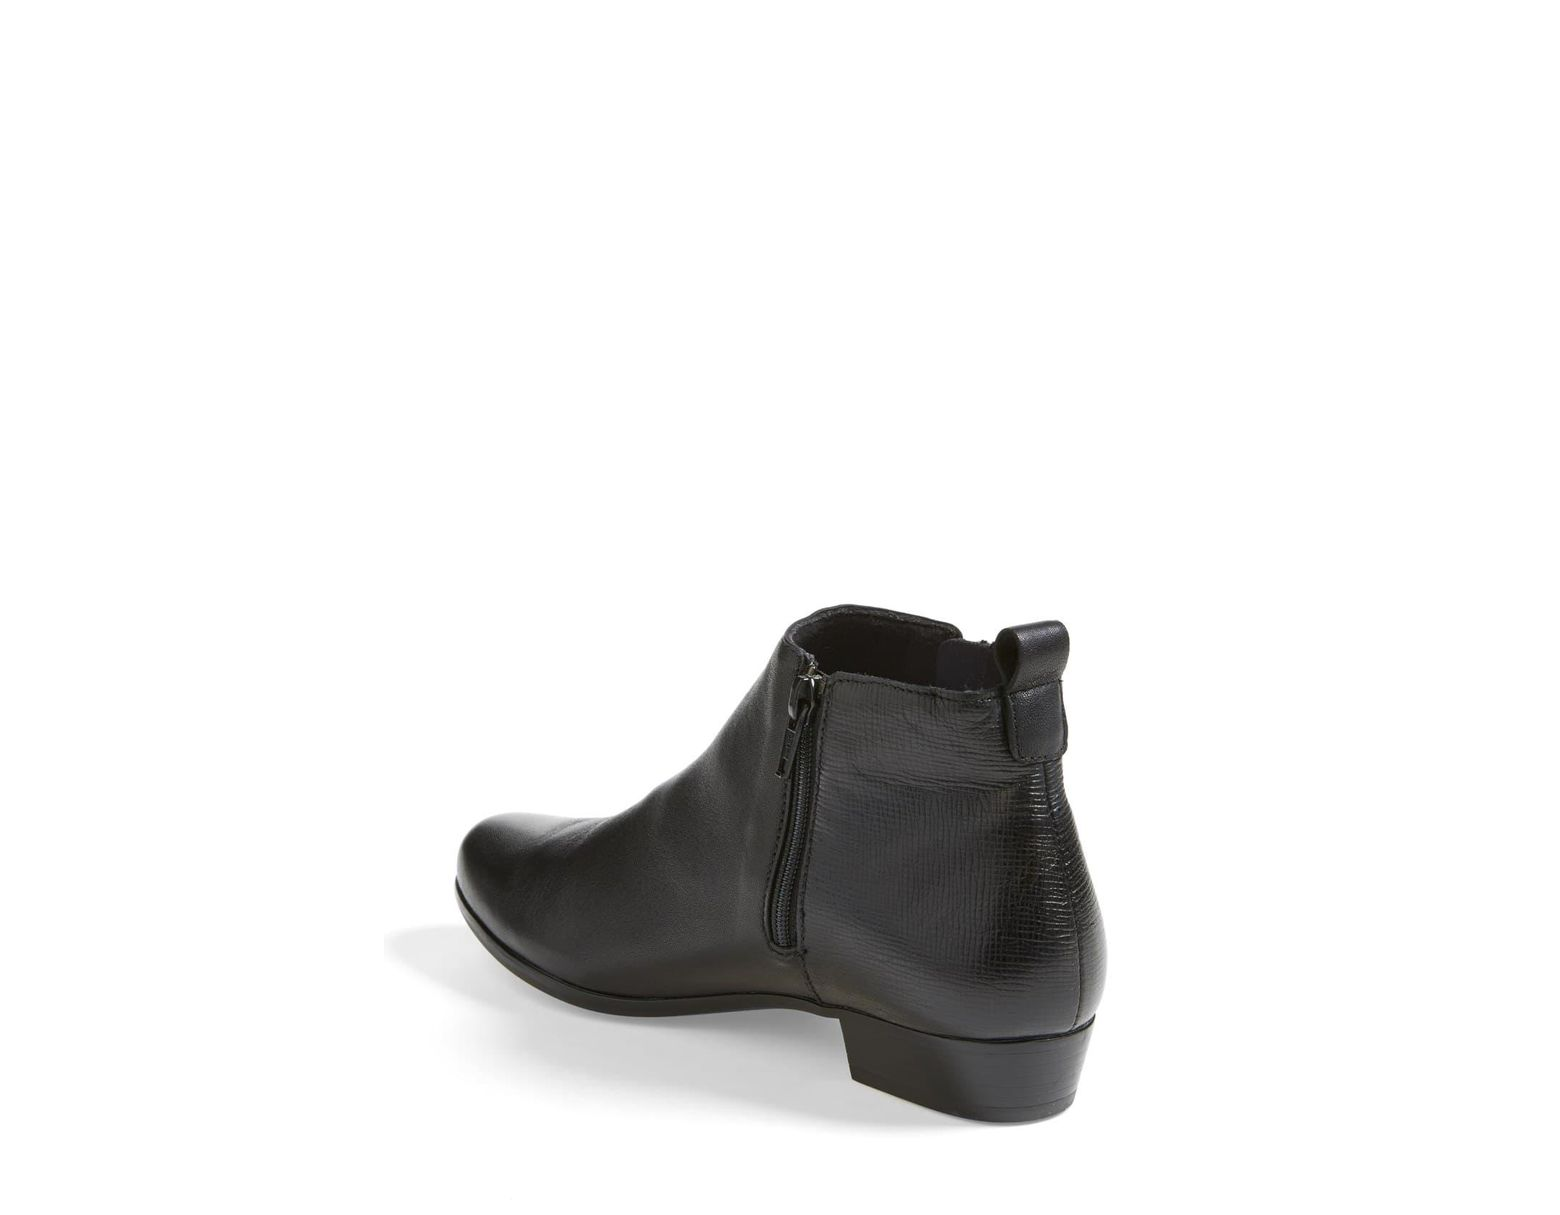 7fa2afeb4 Munro Lexi Boot in Black - Save 63% - Lyst